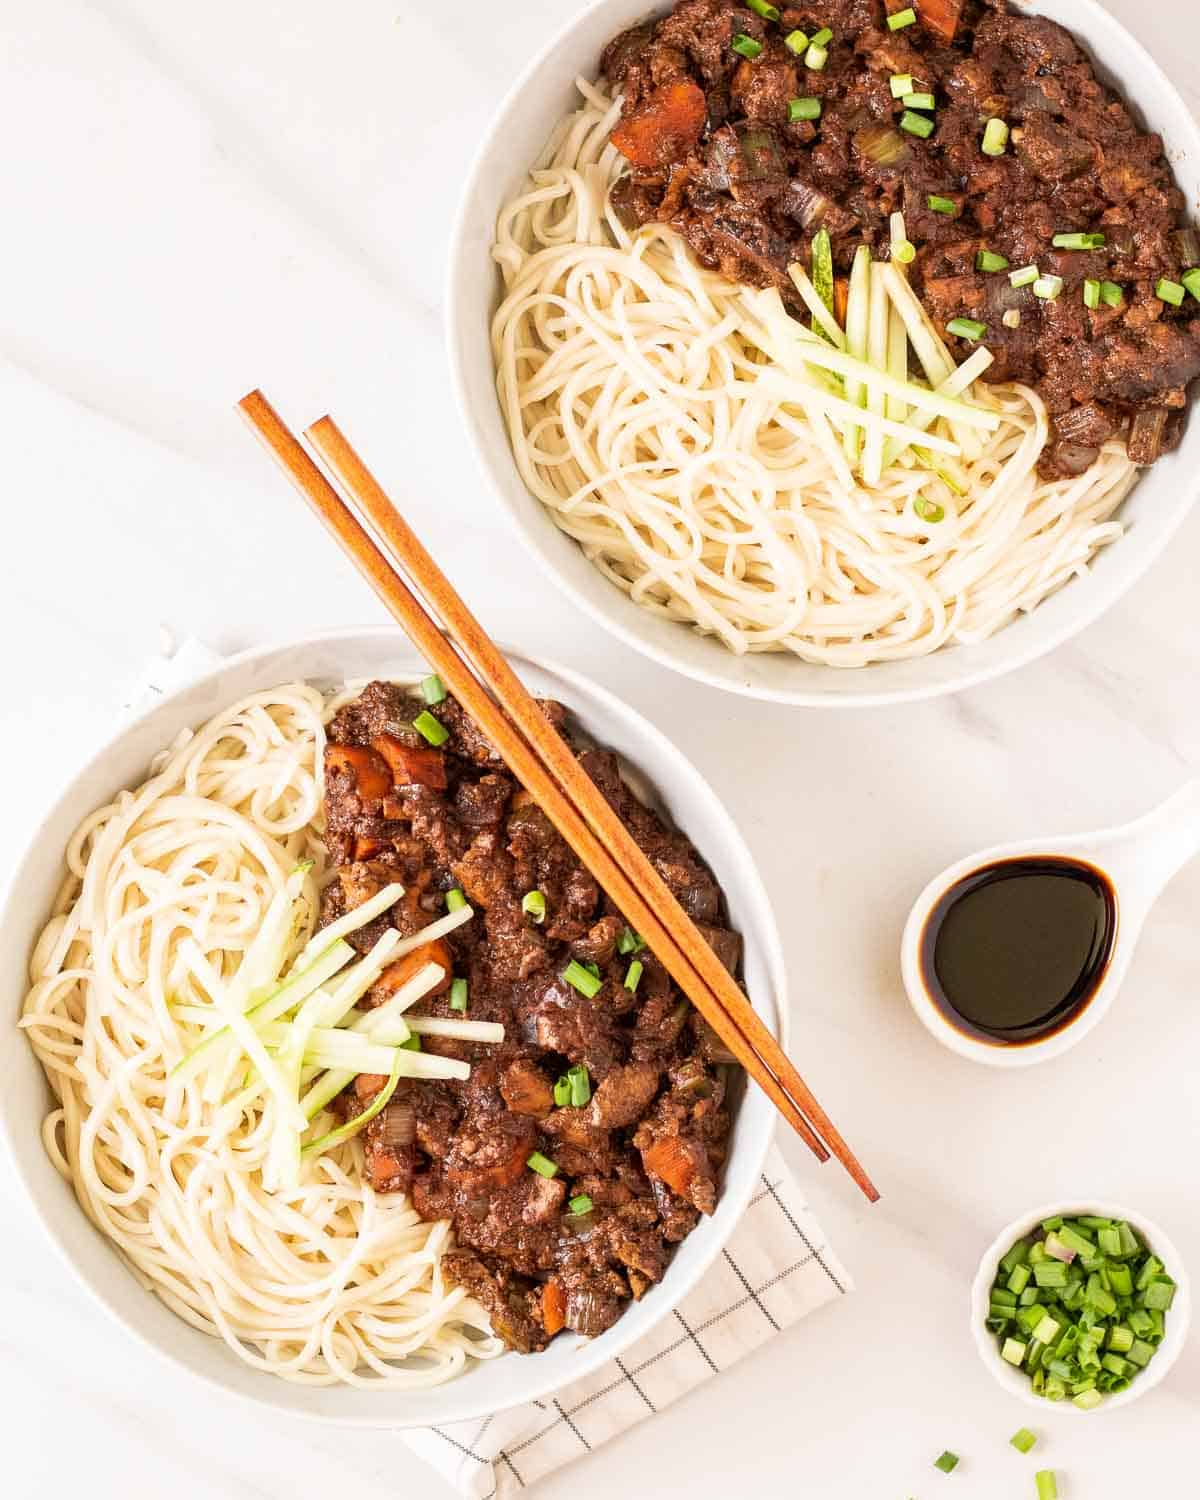 2 bowls of jajangmyeon with chopsticks. There is chopped scallions and soy sauce in the background.